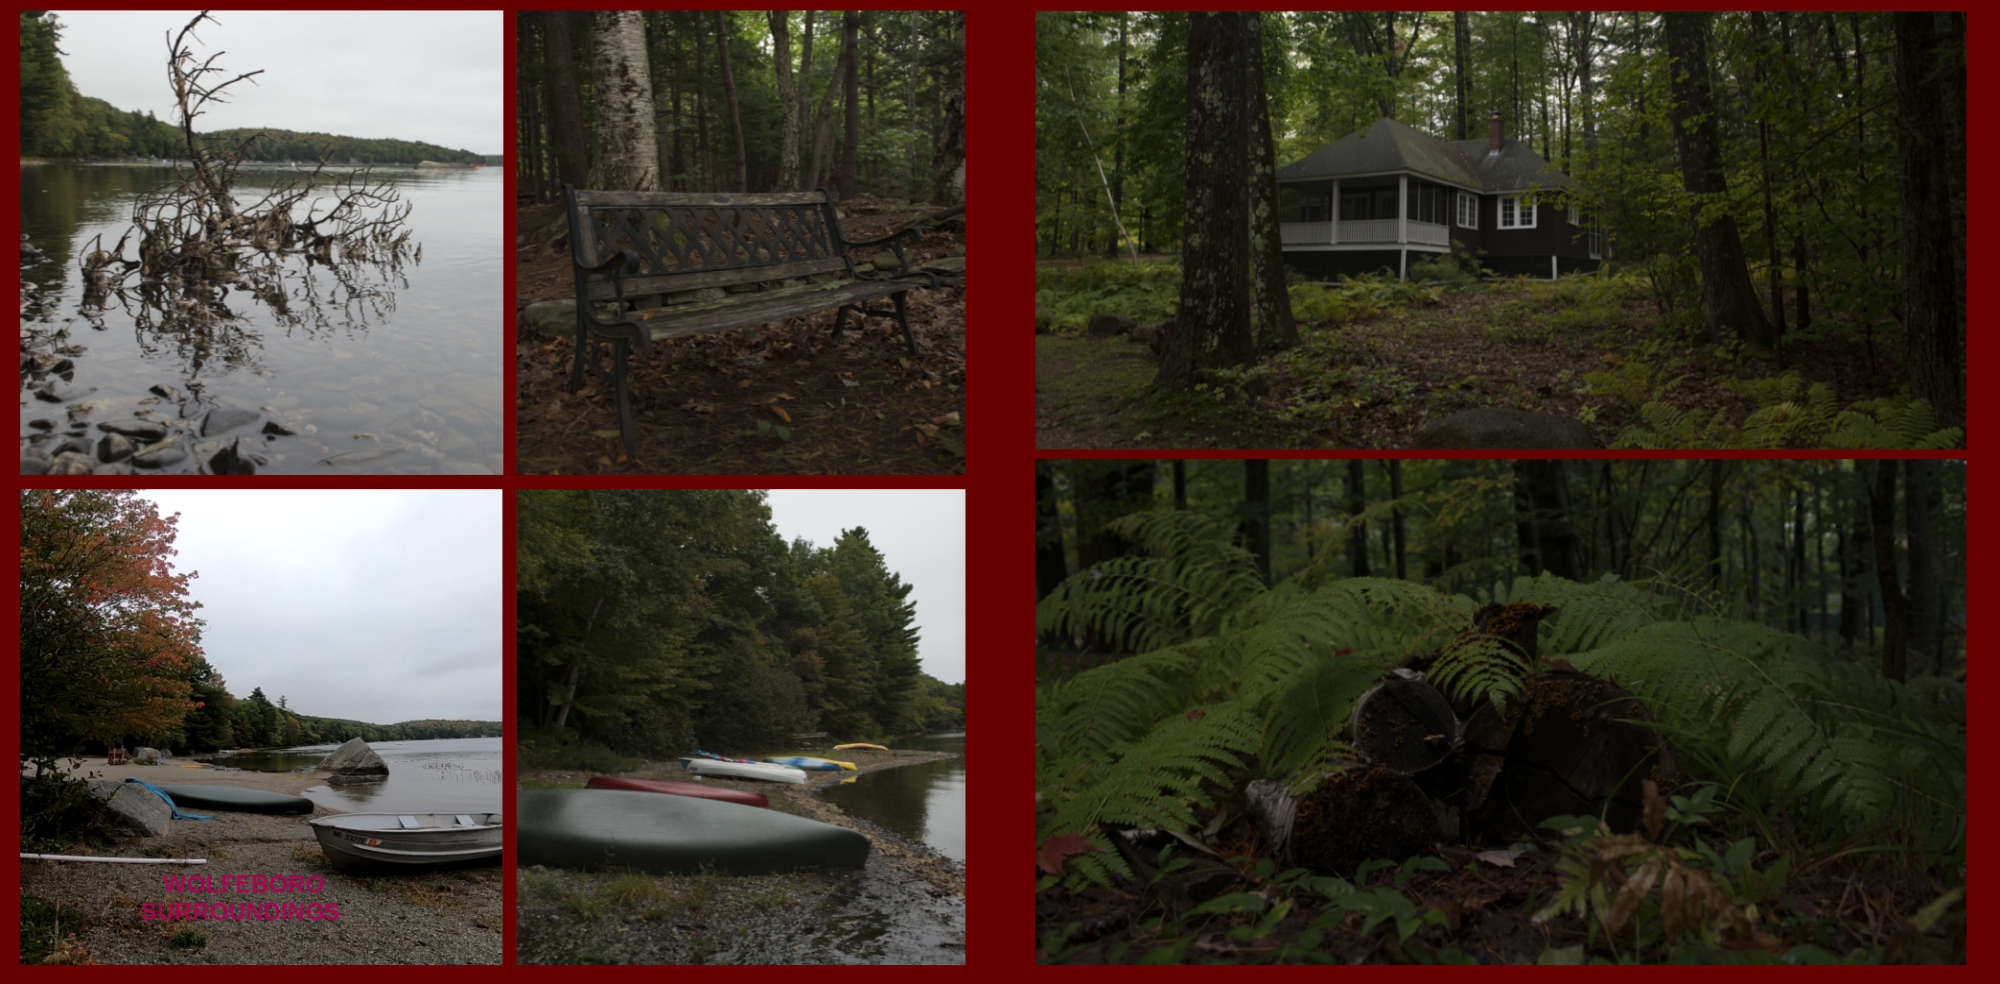 Fall in New-England Album - Page 38: Wolfeboro Lake Page 39: A house in the woods and giant fern plants